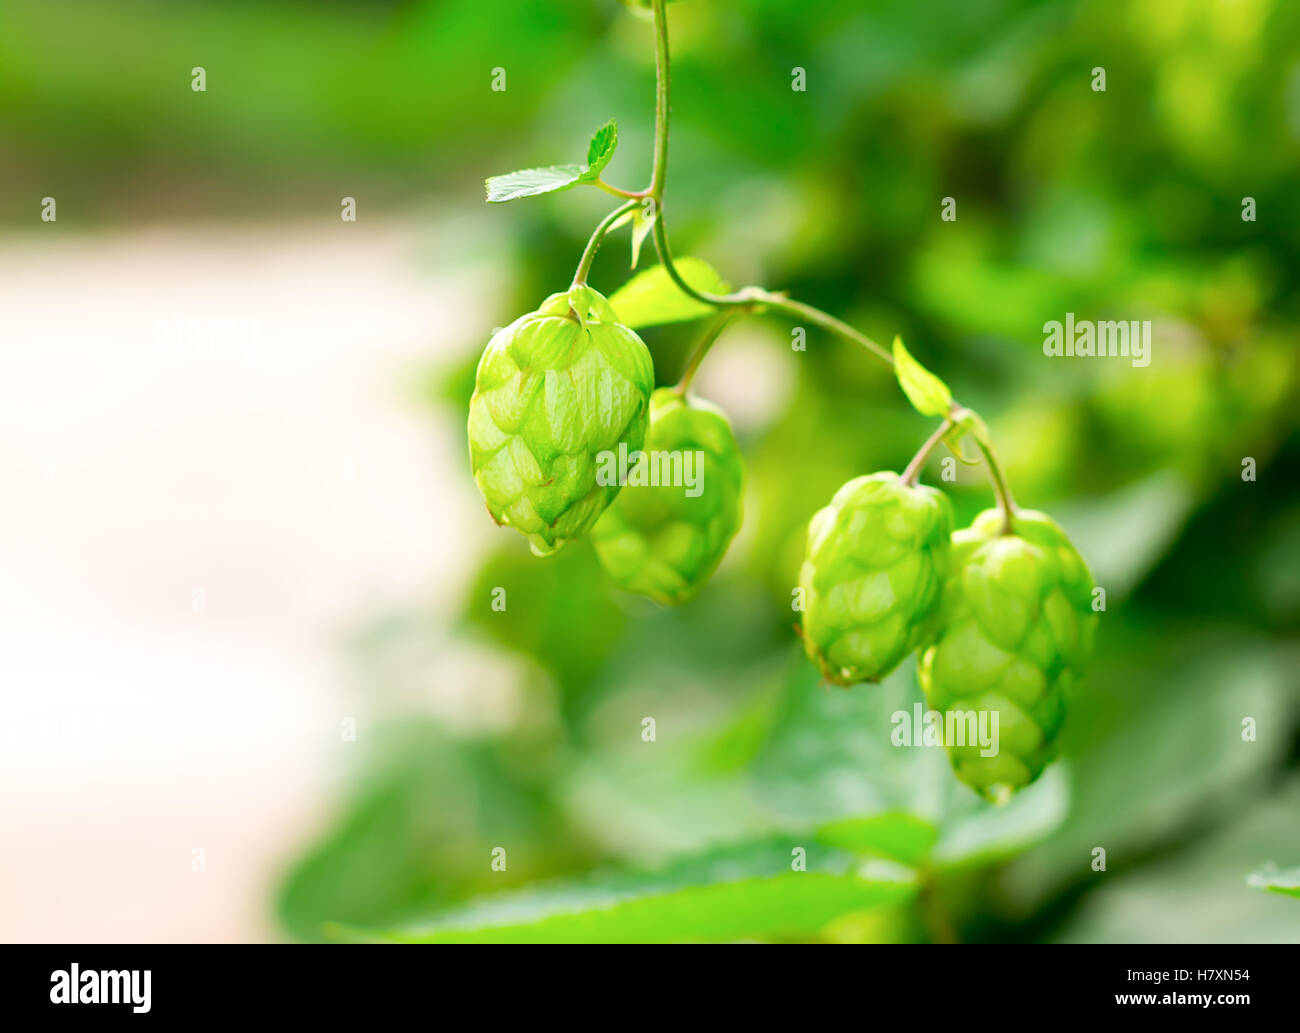 green climbing plant hops, selective focus. Ingredient for making yeast and beer - Stock Image